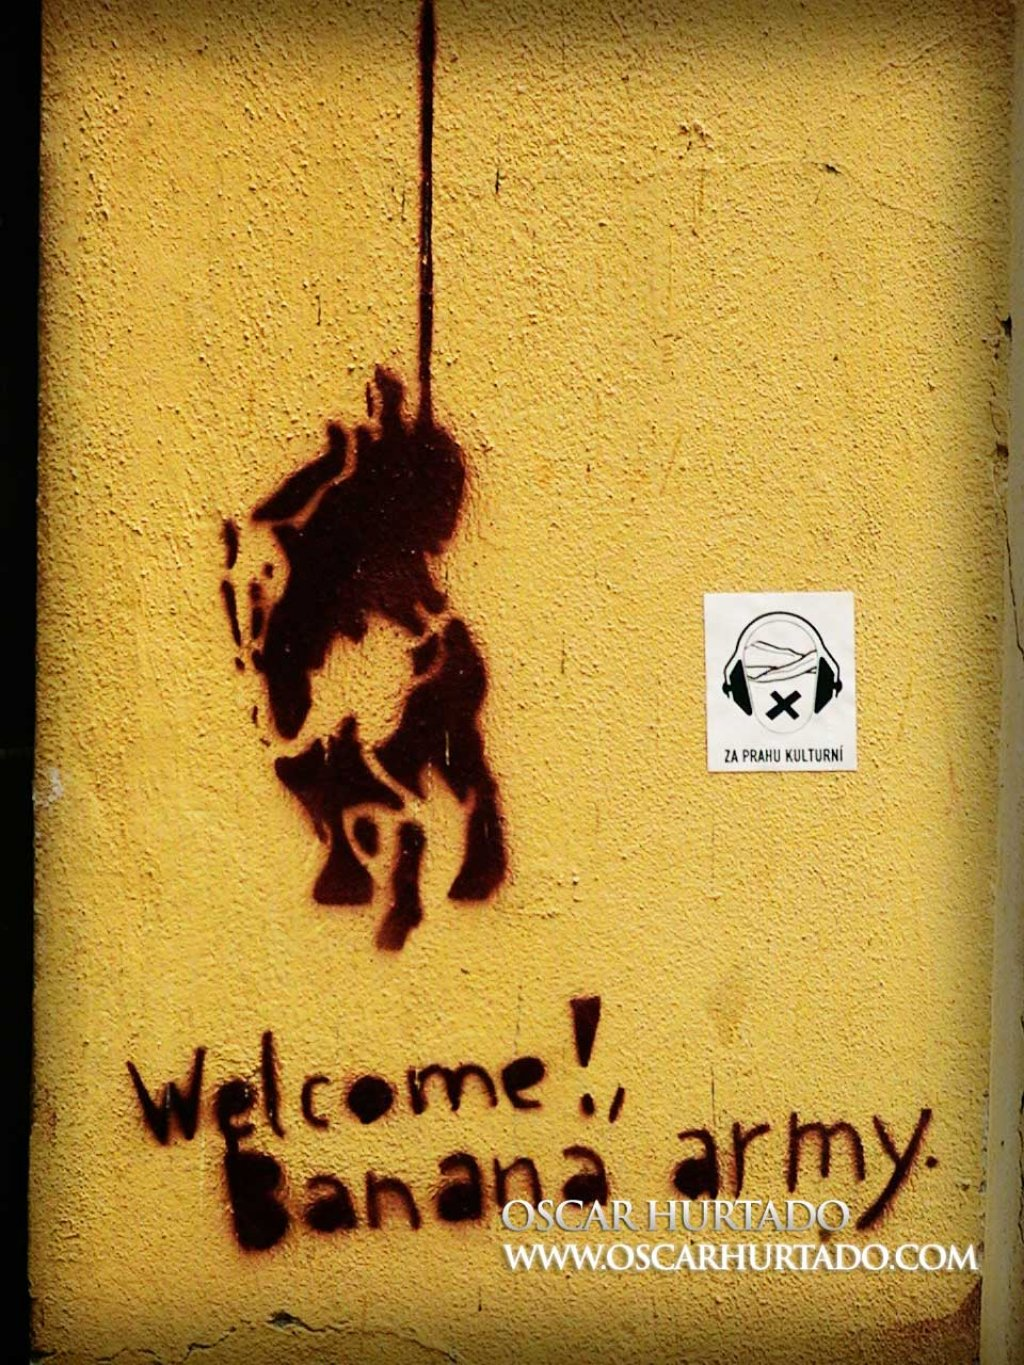 Graffiti portraying Don Quixote and the Banana Army sign